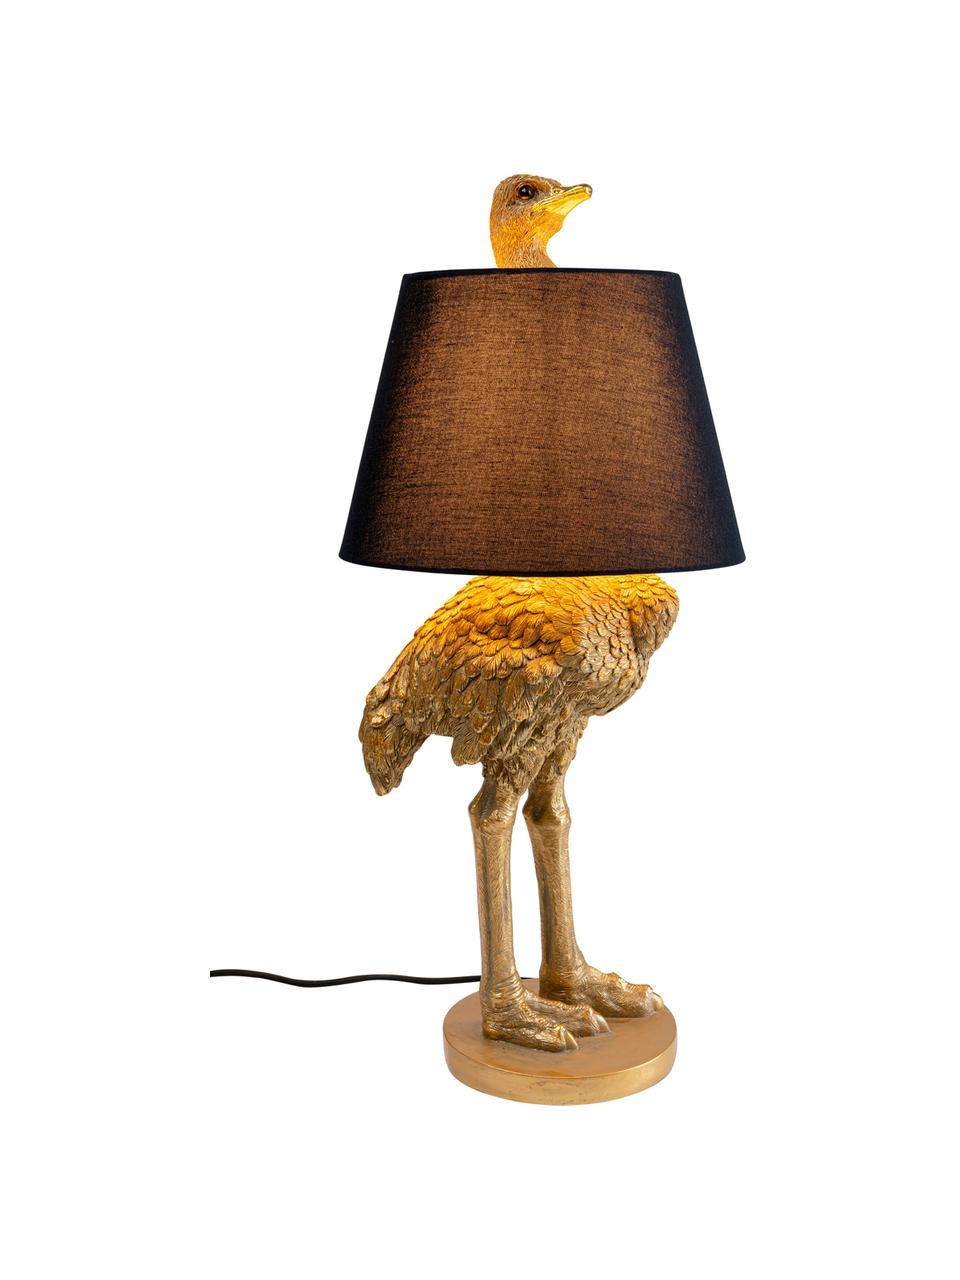 Grande lampe de table design Ostrich, Couleur laitonnée